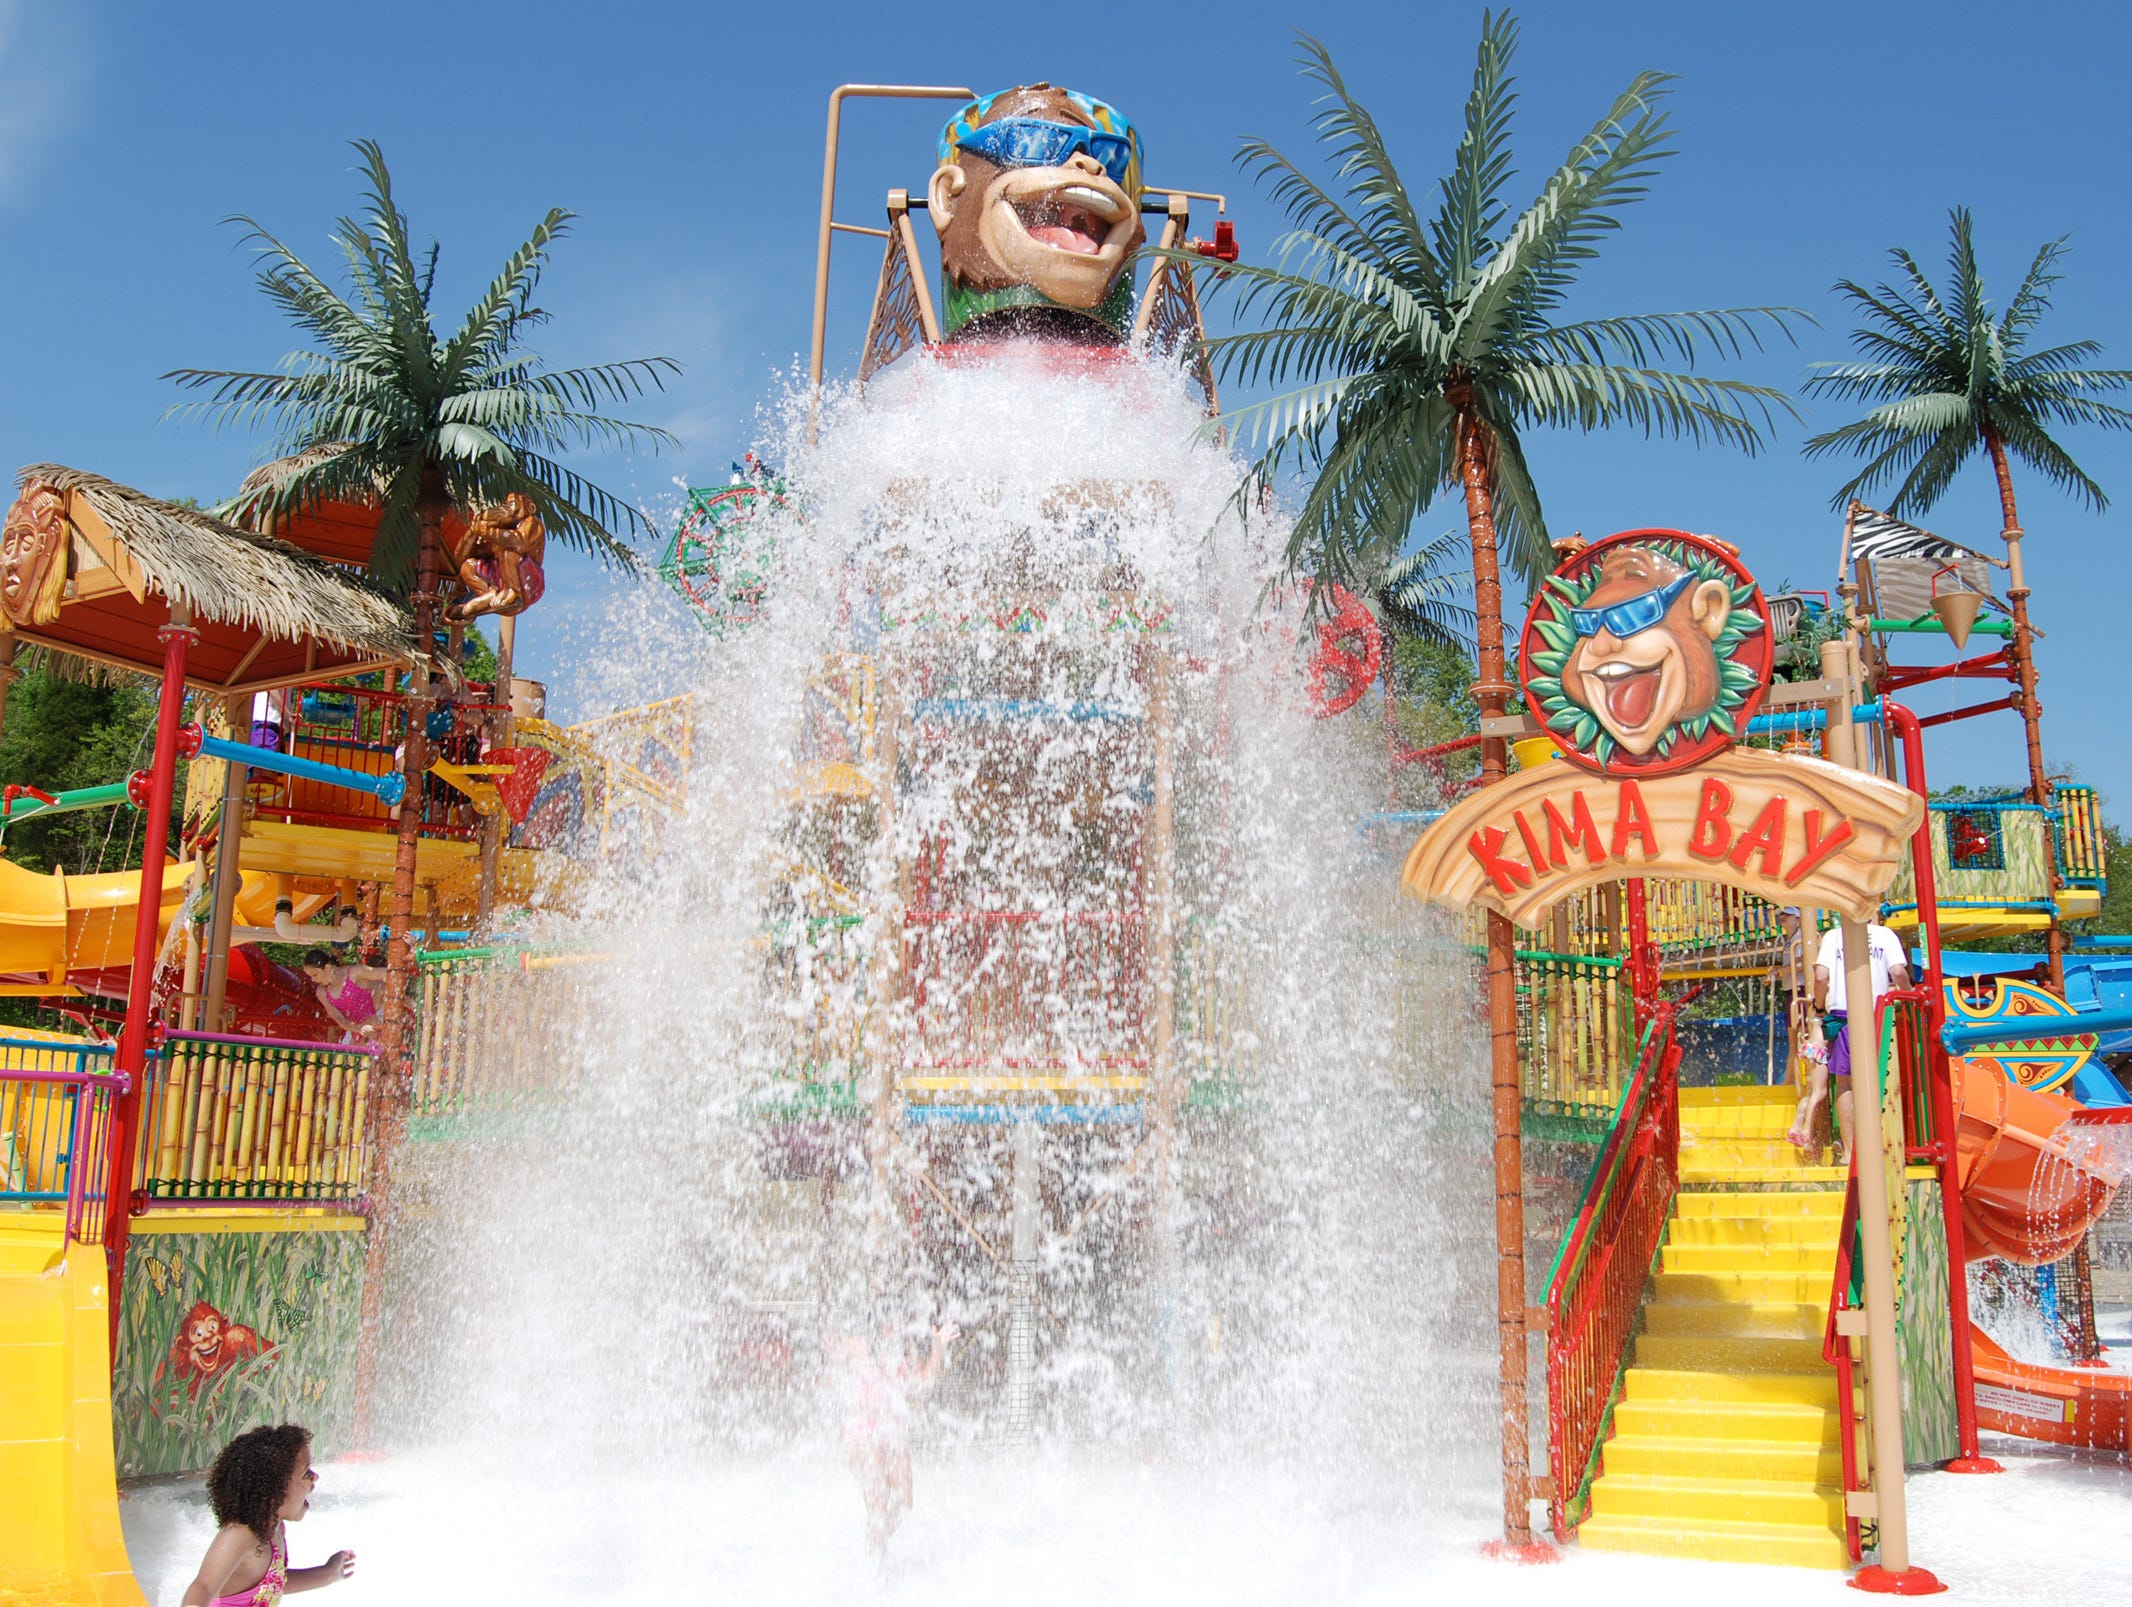 10Best Readers' Choice travel awards had a hot contest for Best U.S. Water Park but Holiday World's Splashin' Safari in Santa Claus, Ind., came out in the #1 spot.  This safari-themed water park features Mammoth and Wildebeest, the world's longest and second-longest water coasters.  Readers of 10Best and USA TODAY are obviously big fans of both!